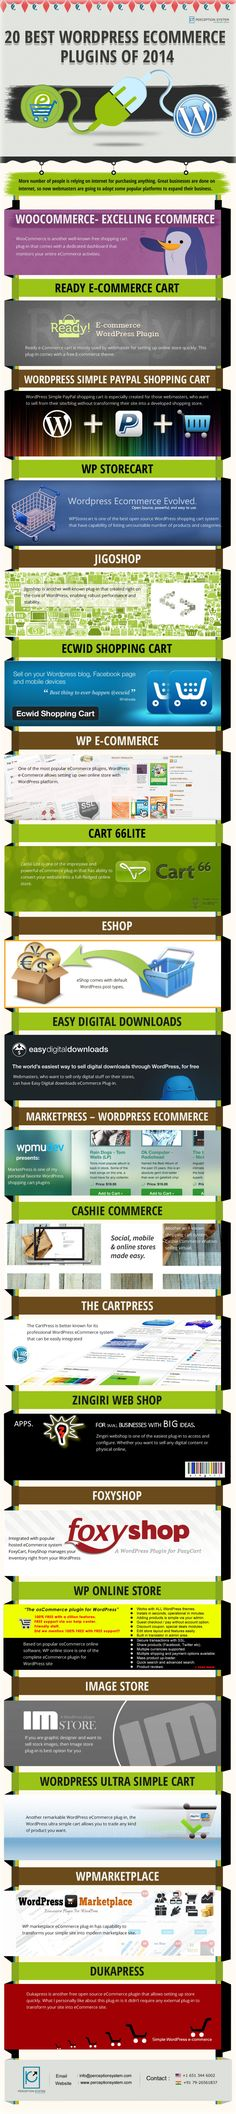 20 Best eCommerce WordPress Plug-ins in 2014